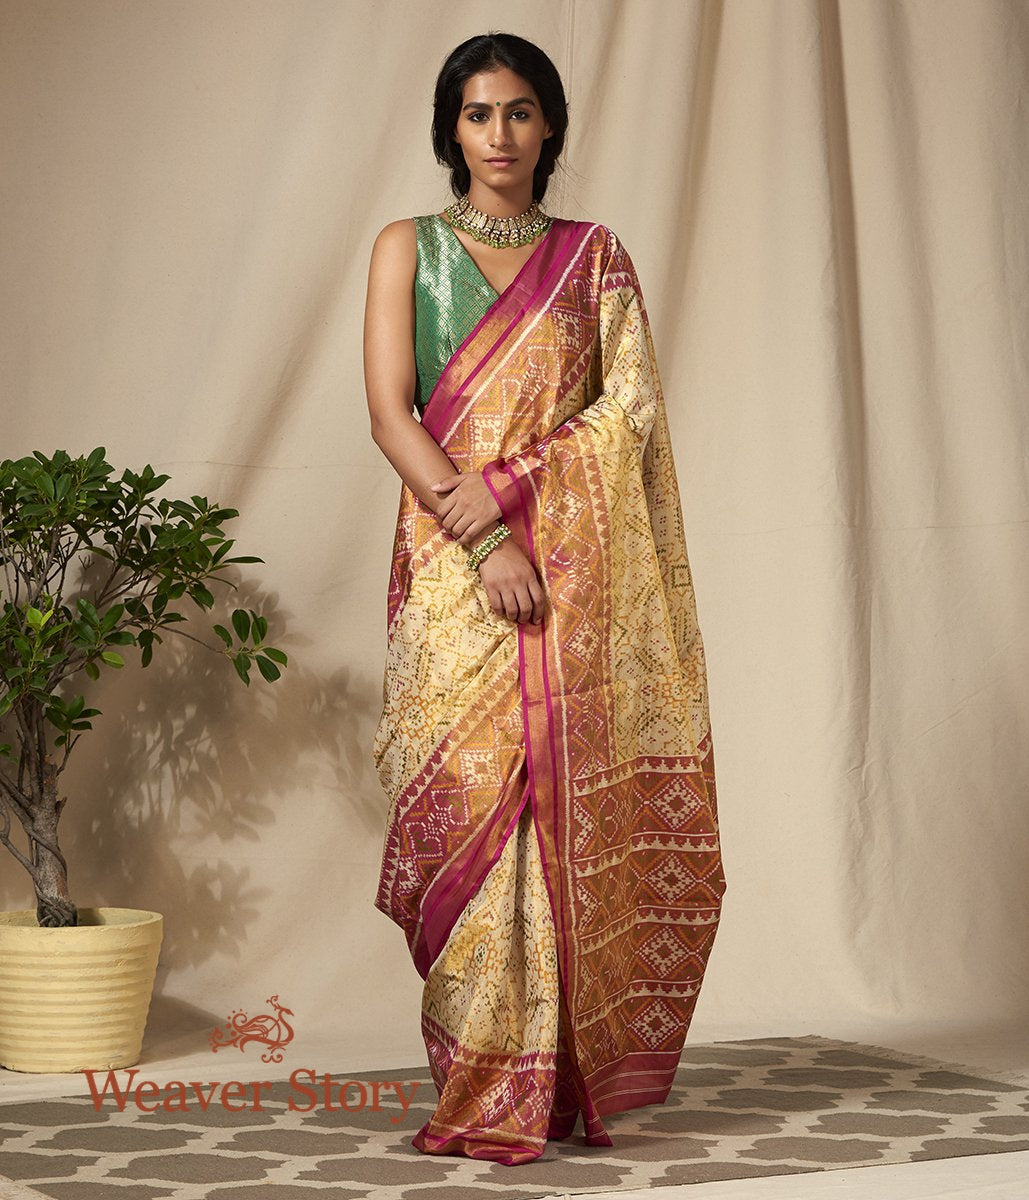 Handwoven Silk Tissue Gujarat Patola Saree in Cream and Pink